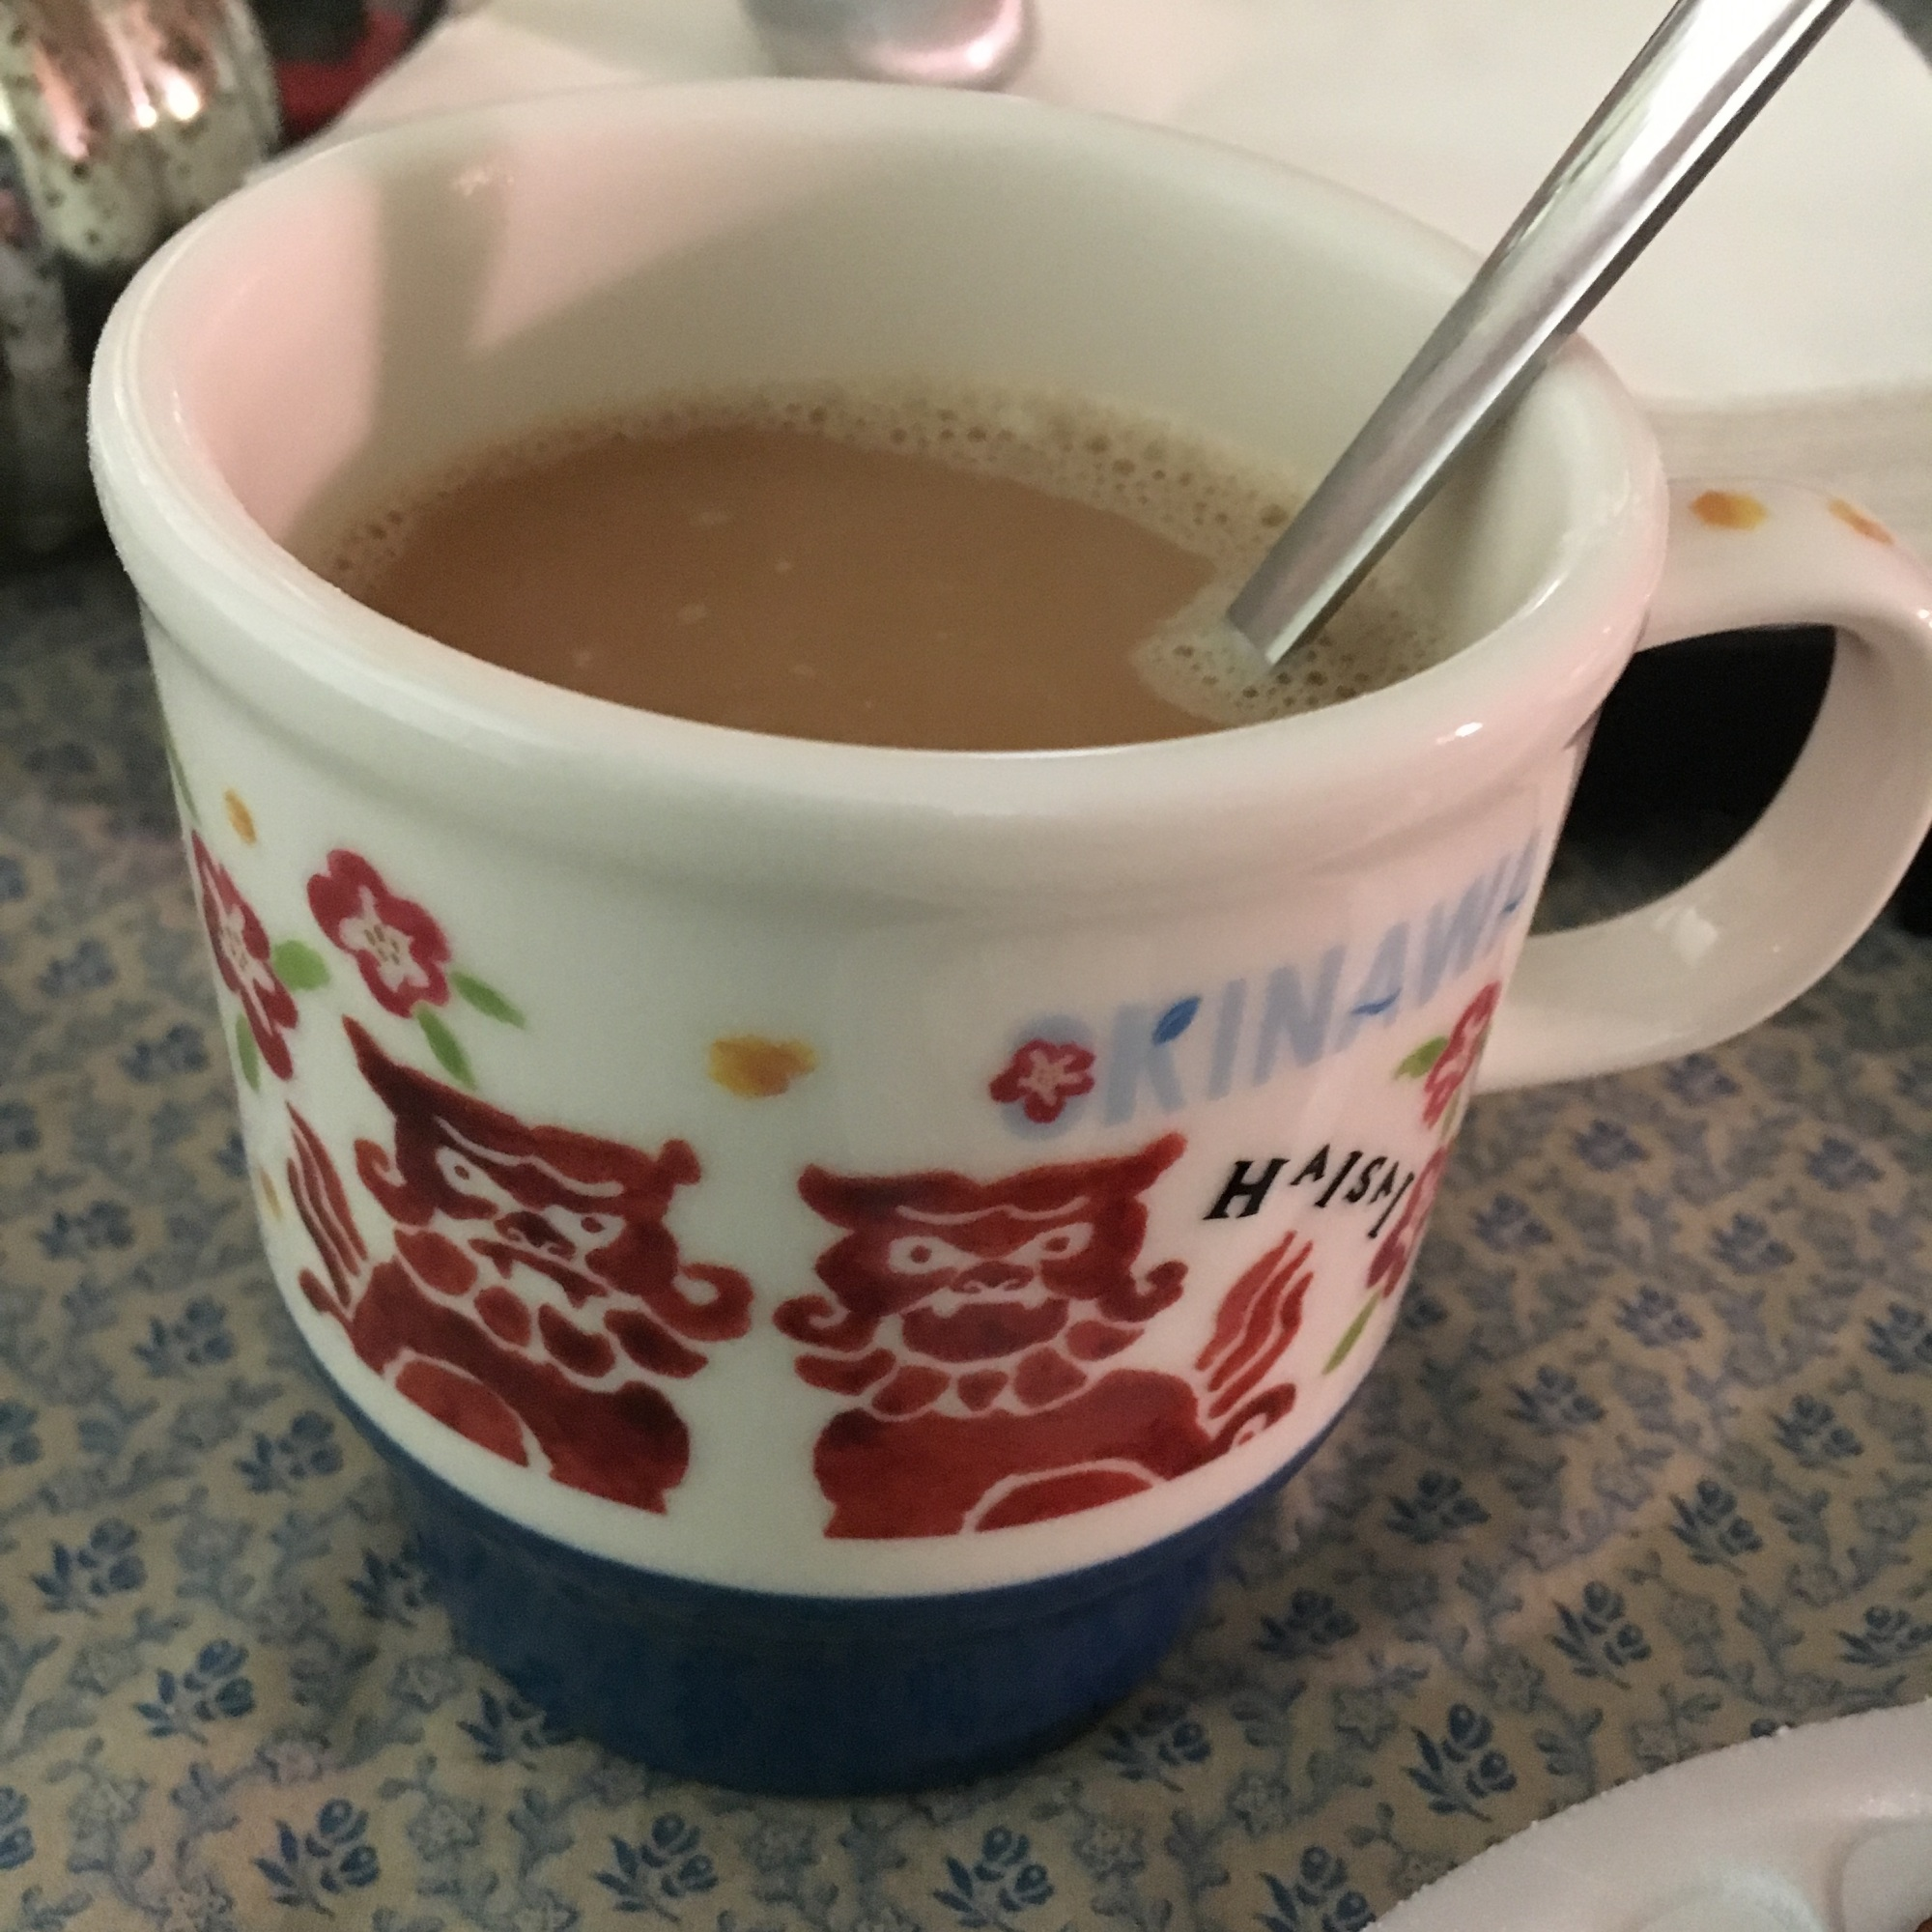 Cup courtesy of family in Okinawa